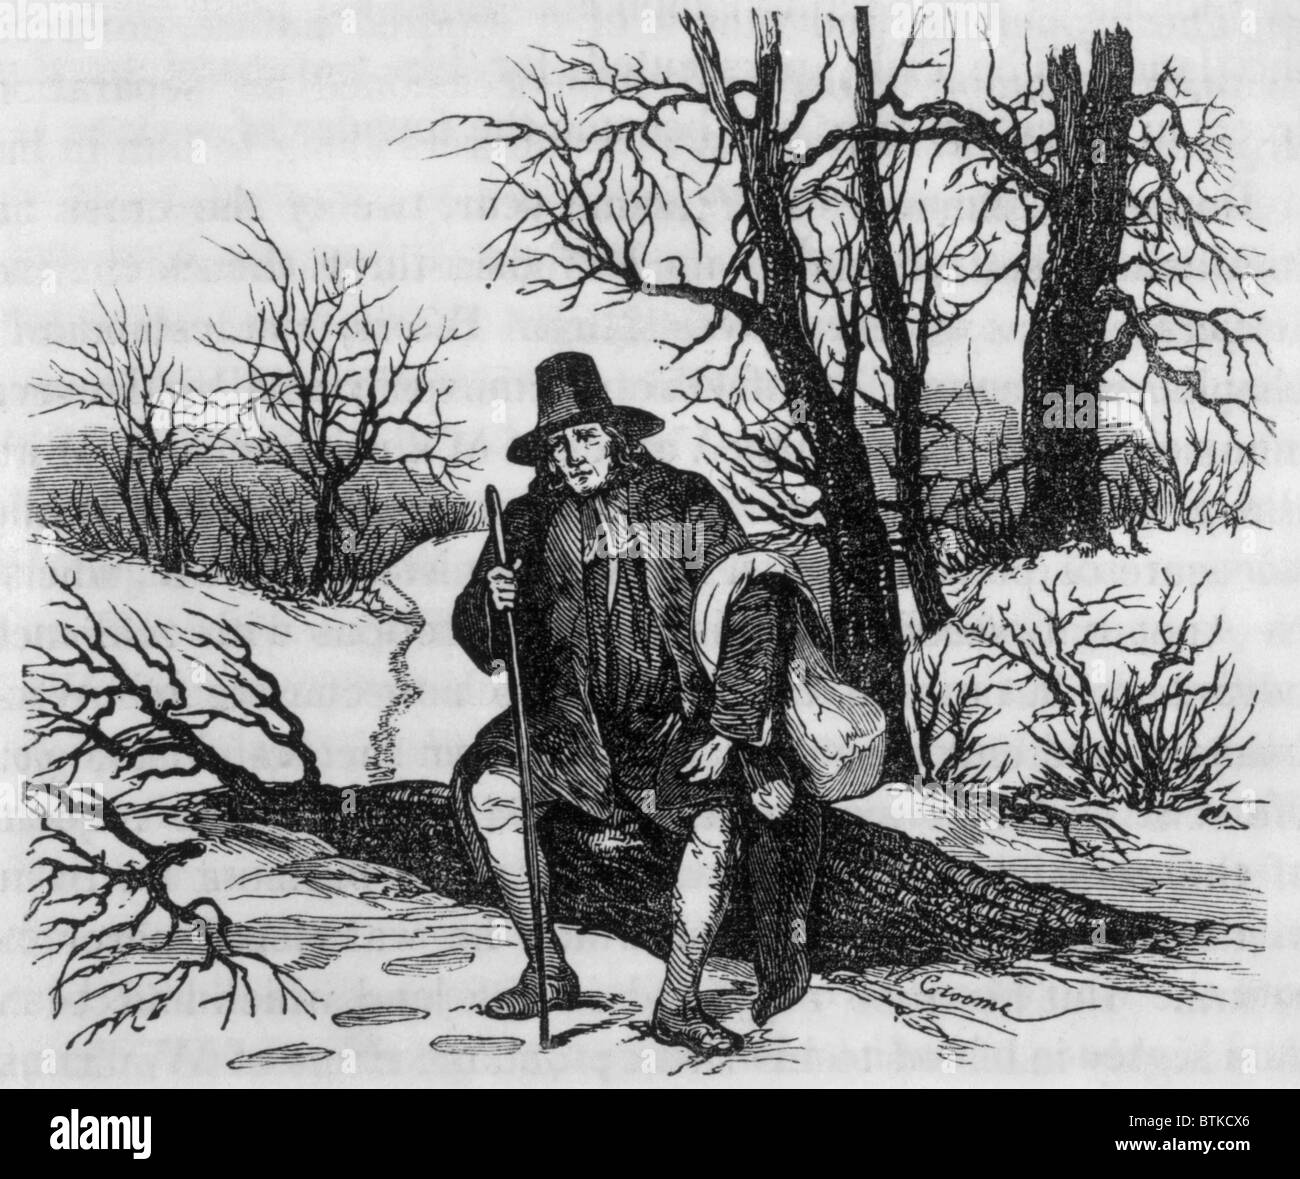 an introduction to the history of the massachusetts bay colony The massachusetts bay colony was founded by english puritans who formed a company, known as the massachusetts bay company, in england with the purpose of creating a colony for likeminded men and.